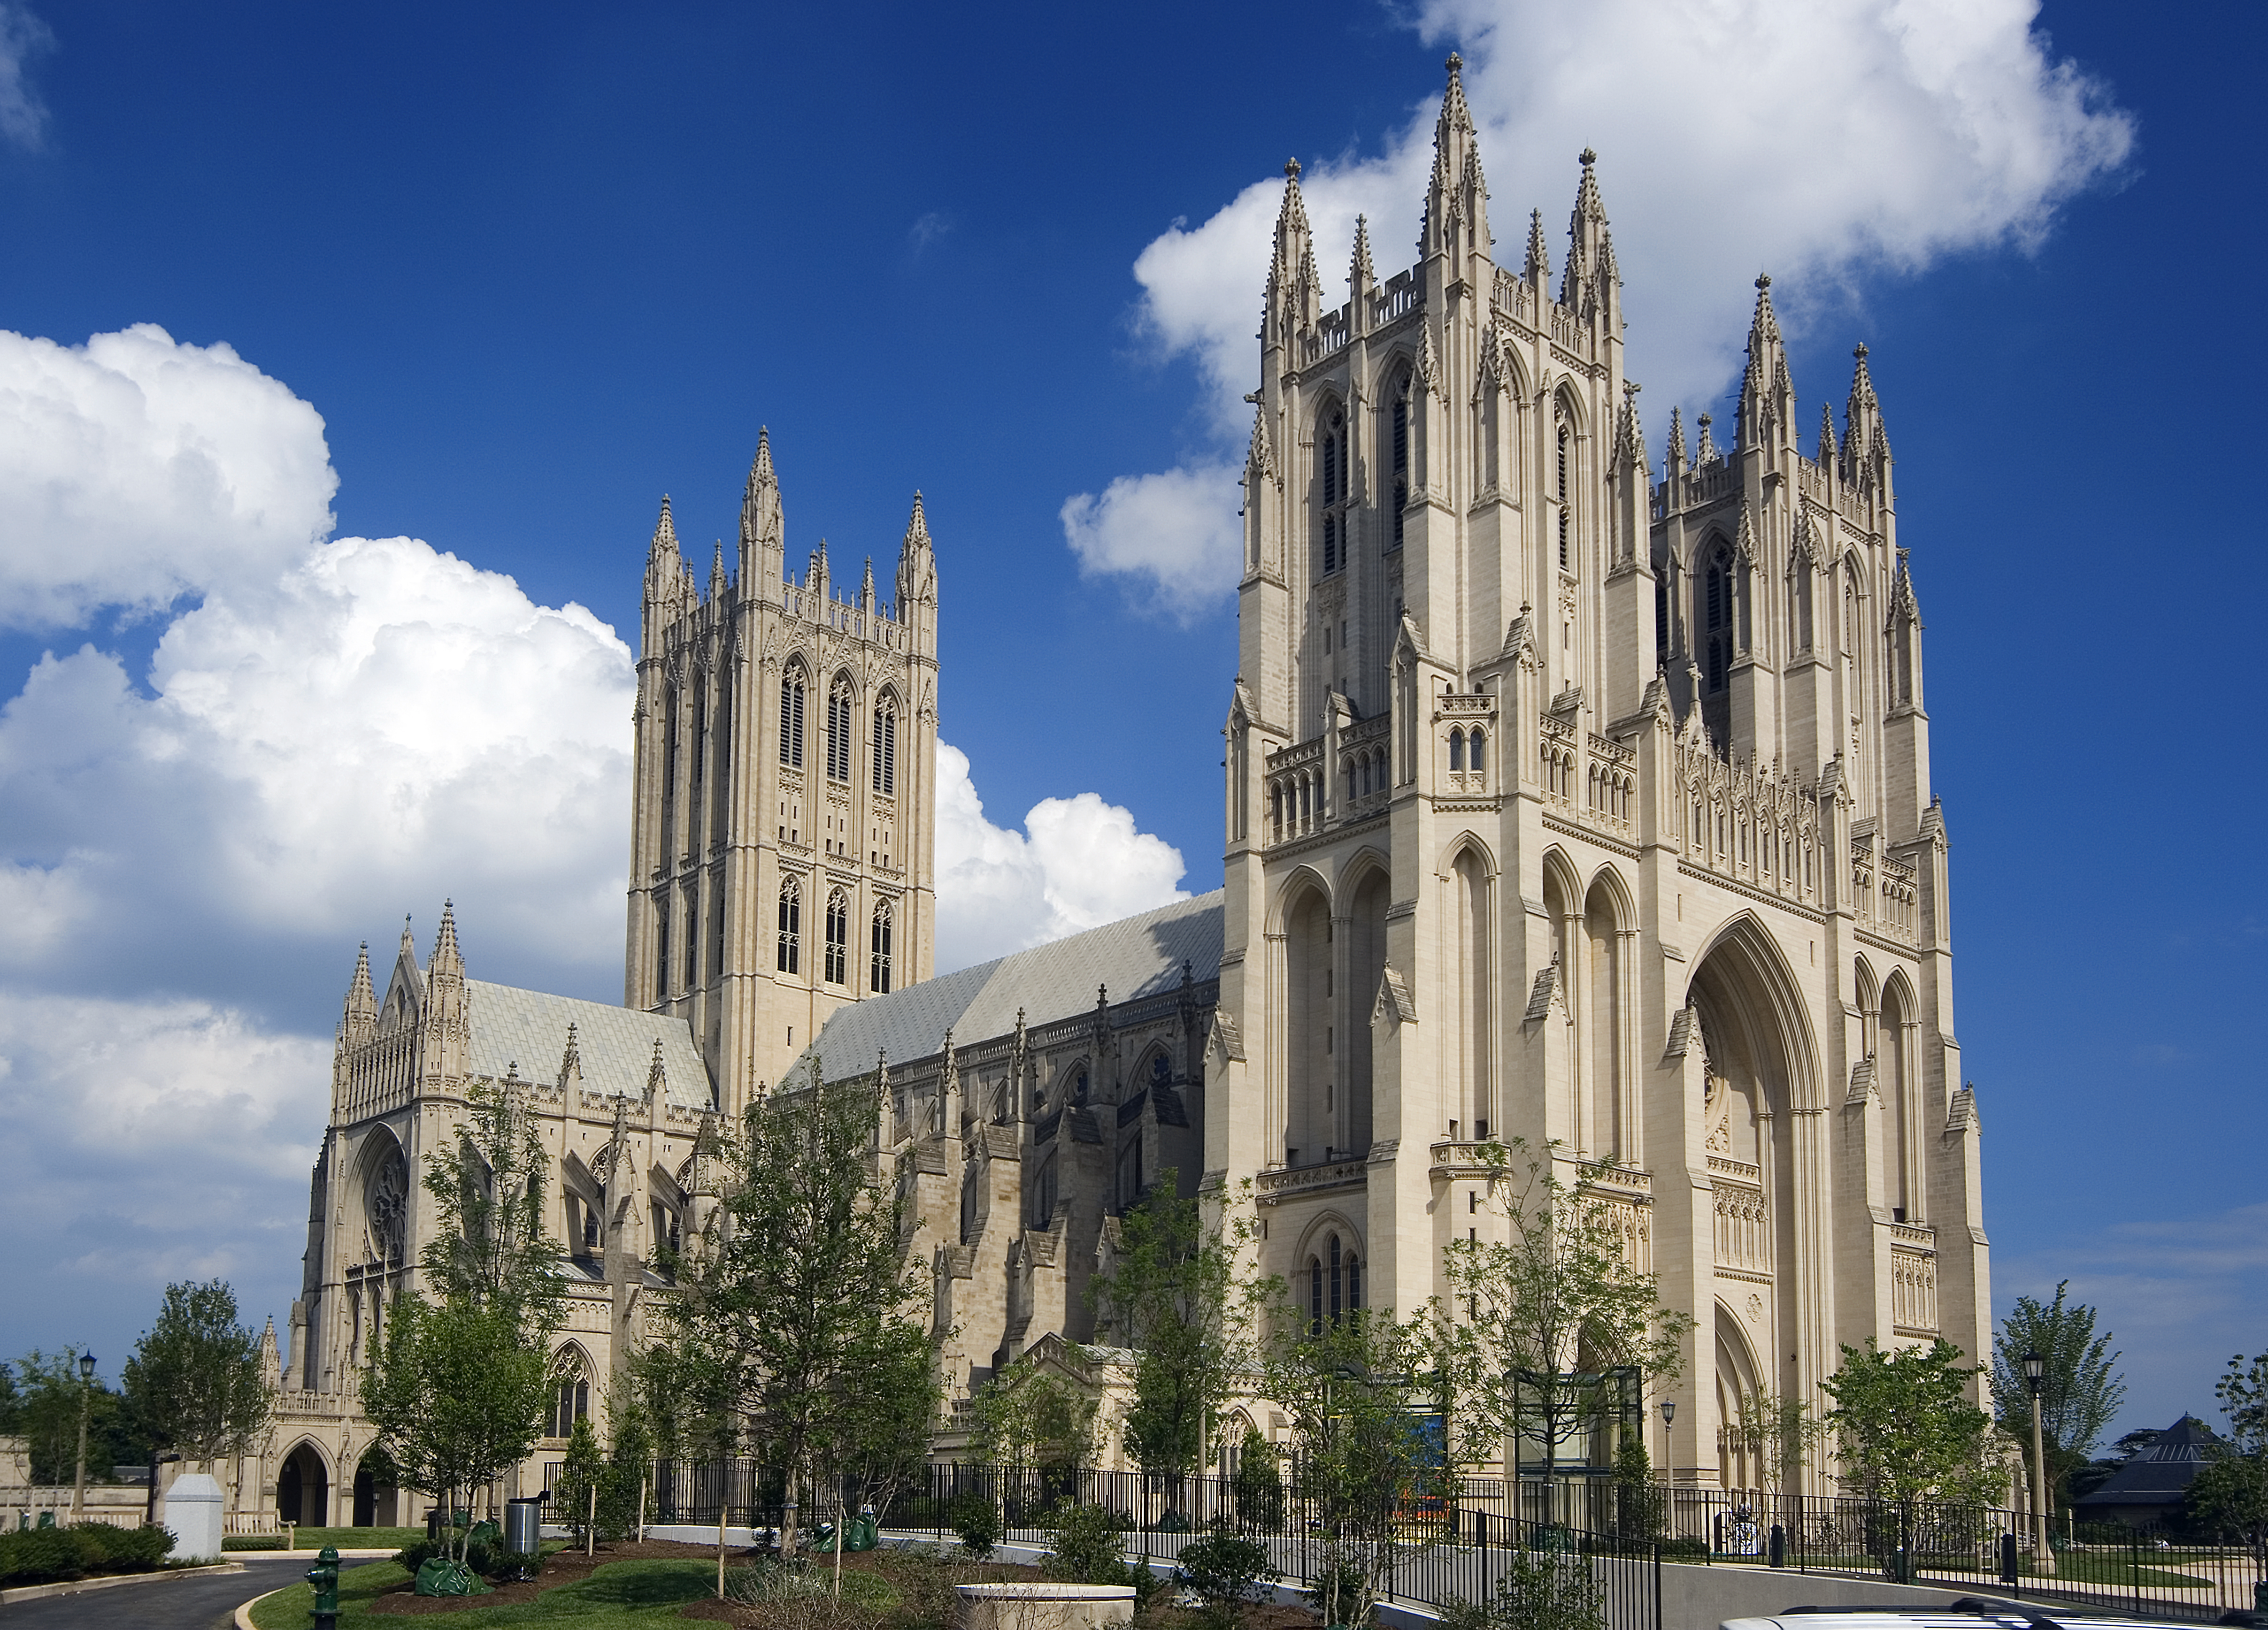 The Washington National Cathedral in Washington, D.C.